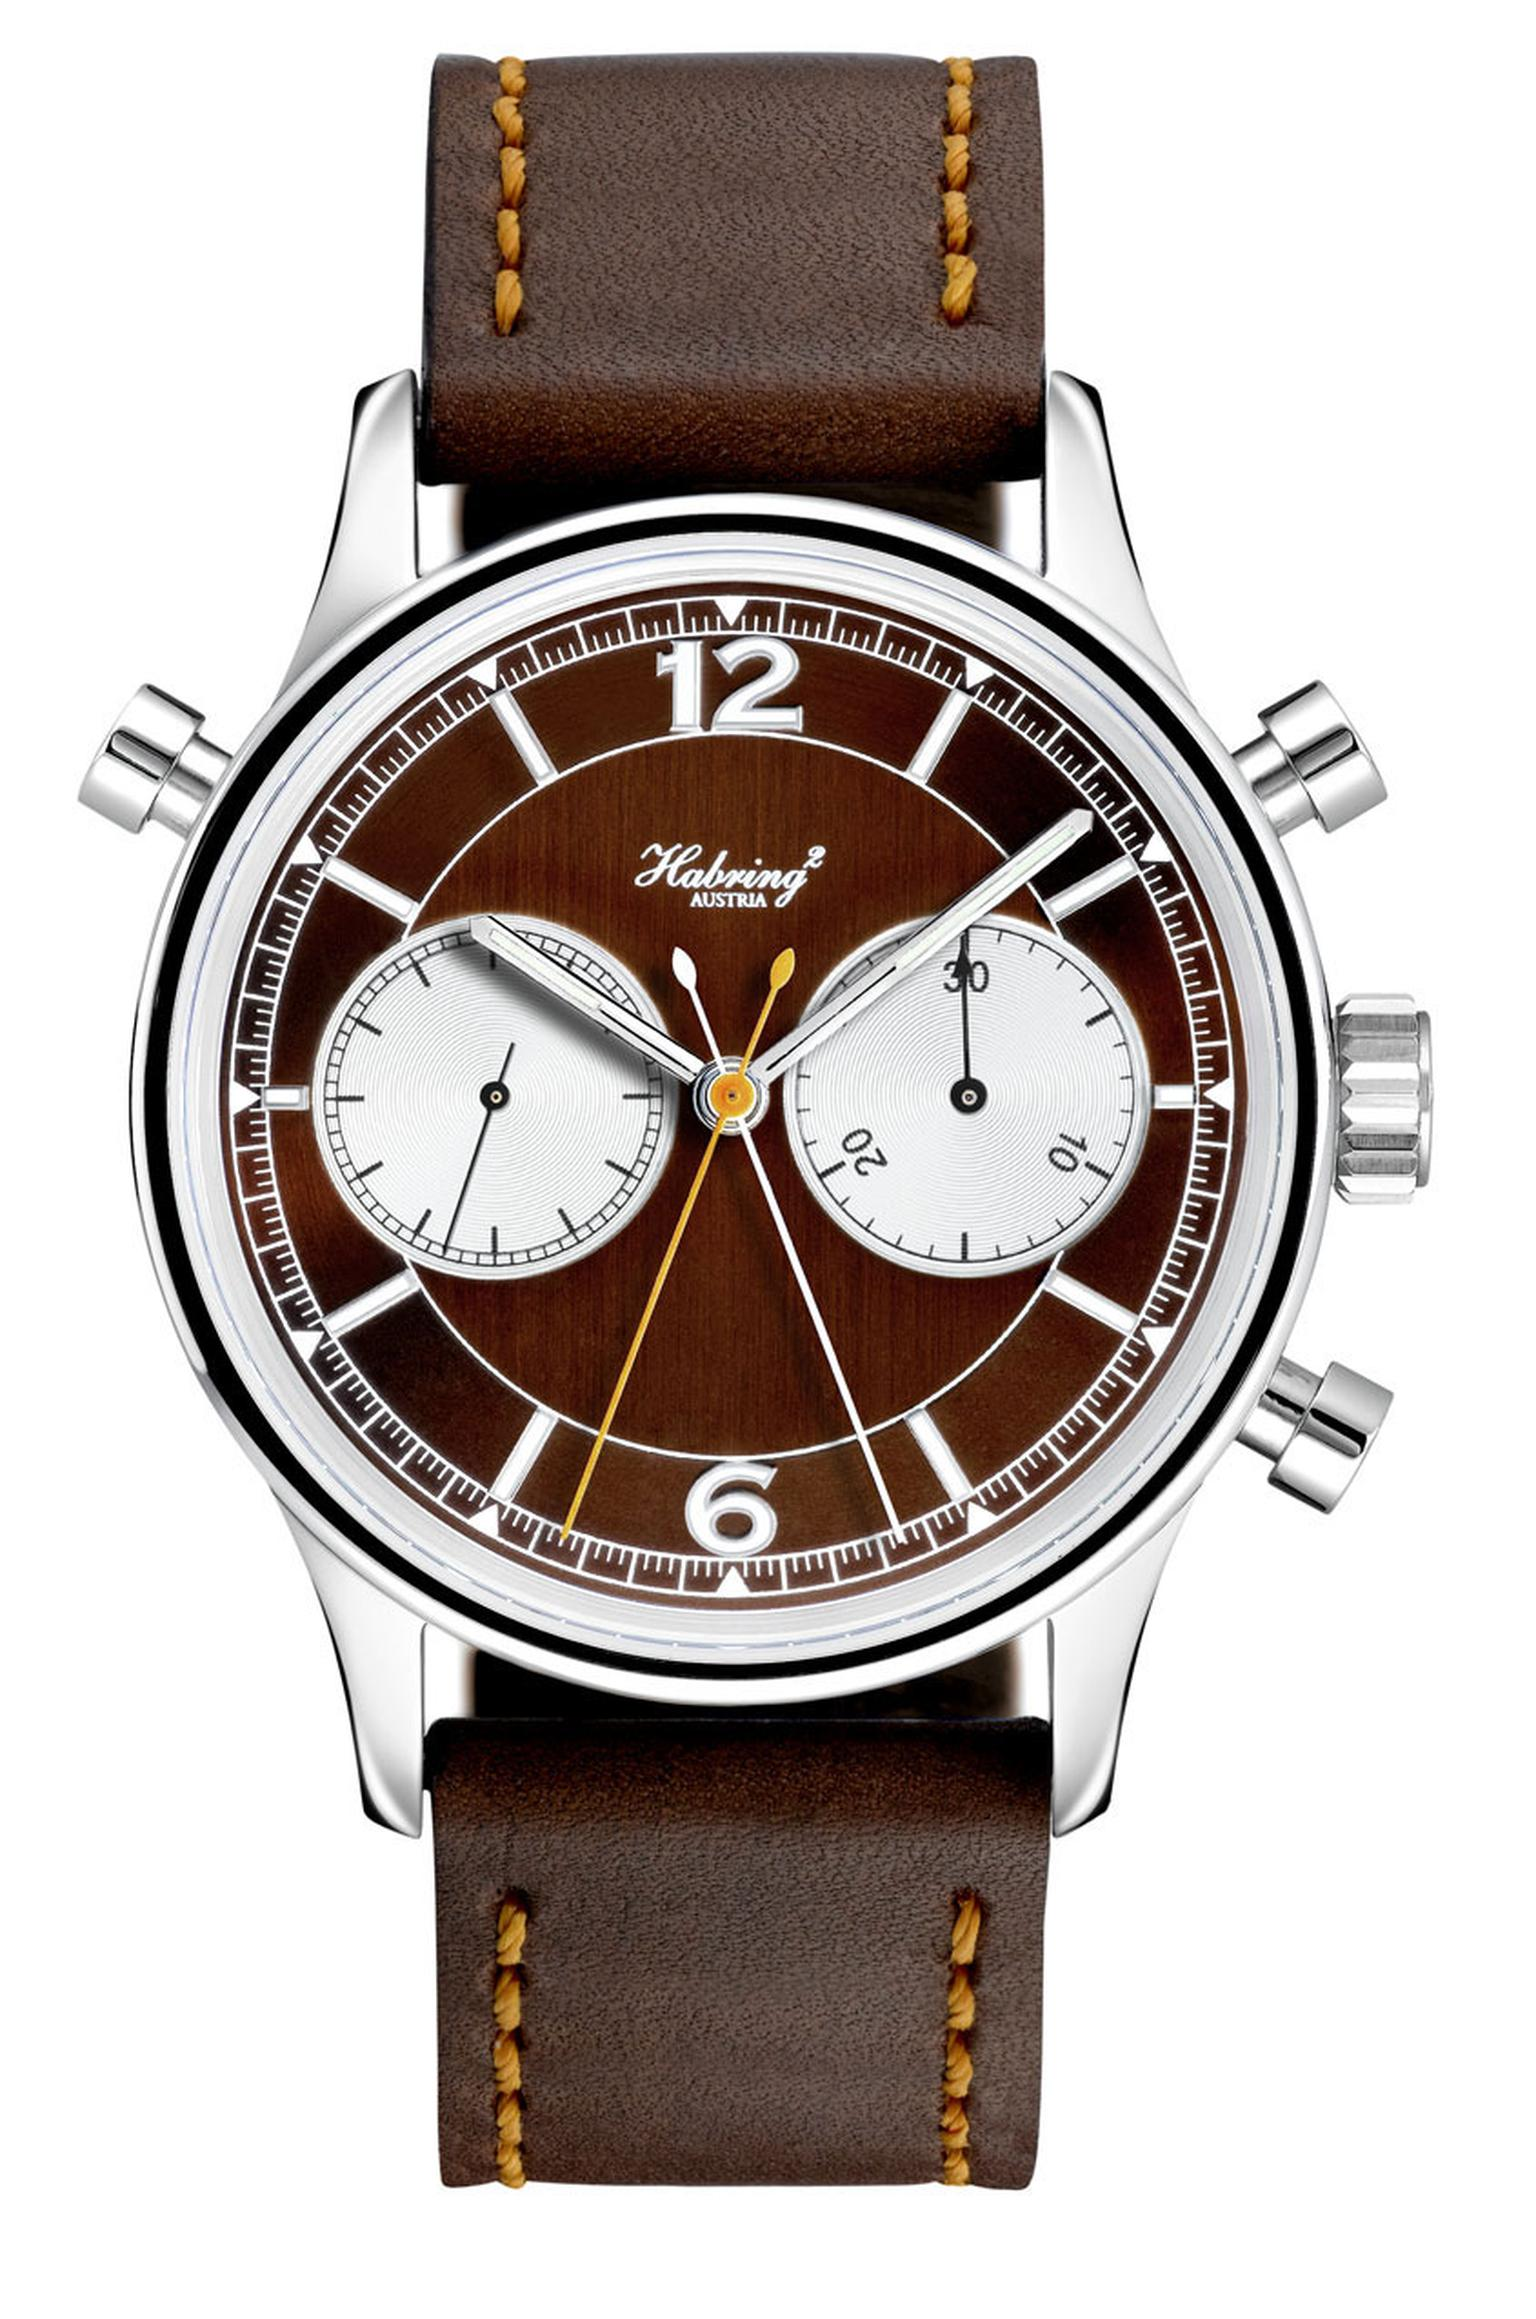 Grand-Prix-HABRING2_Doppel_brown